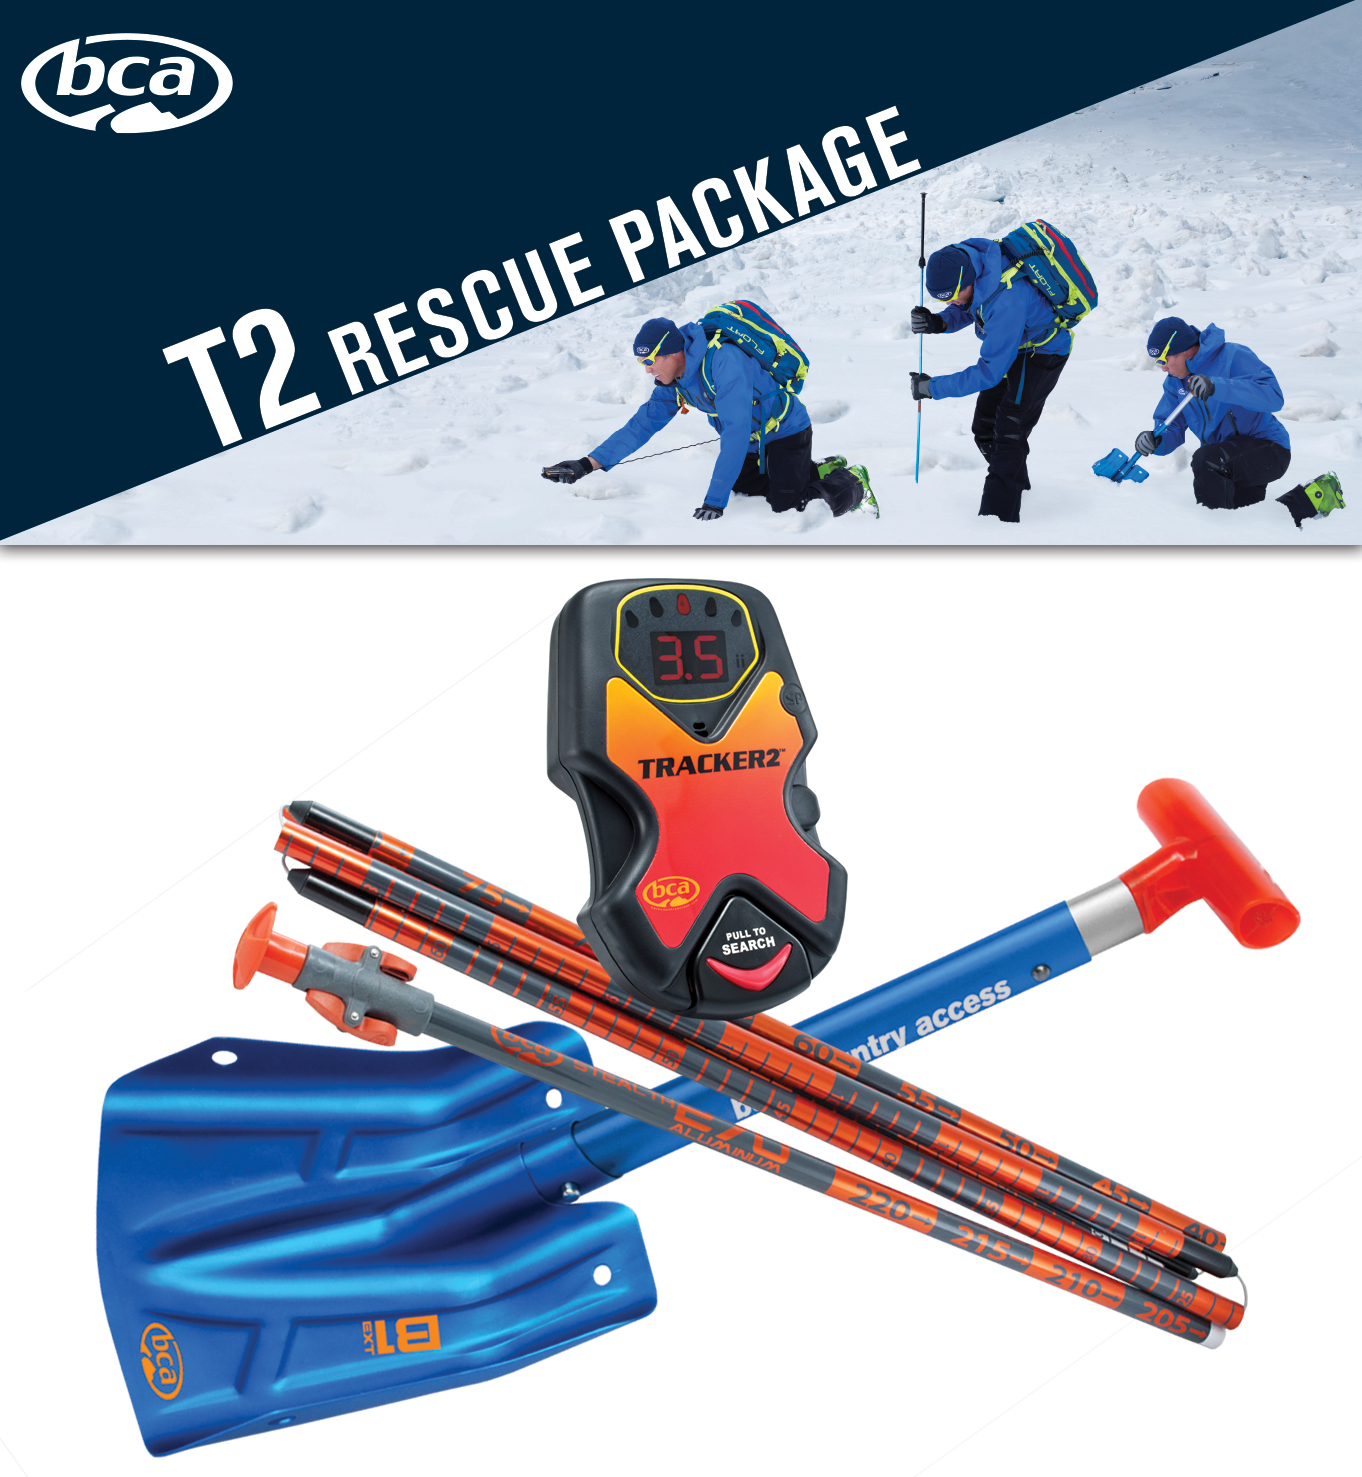 BCA T2 Rescue Package includes all of the backcountry essentials. Image: BCA